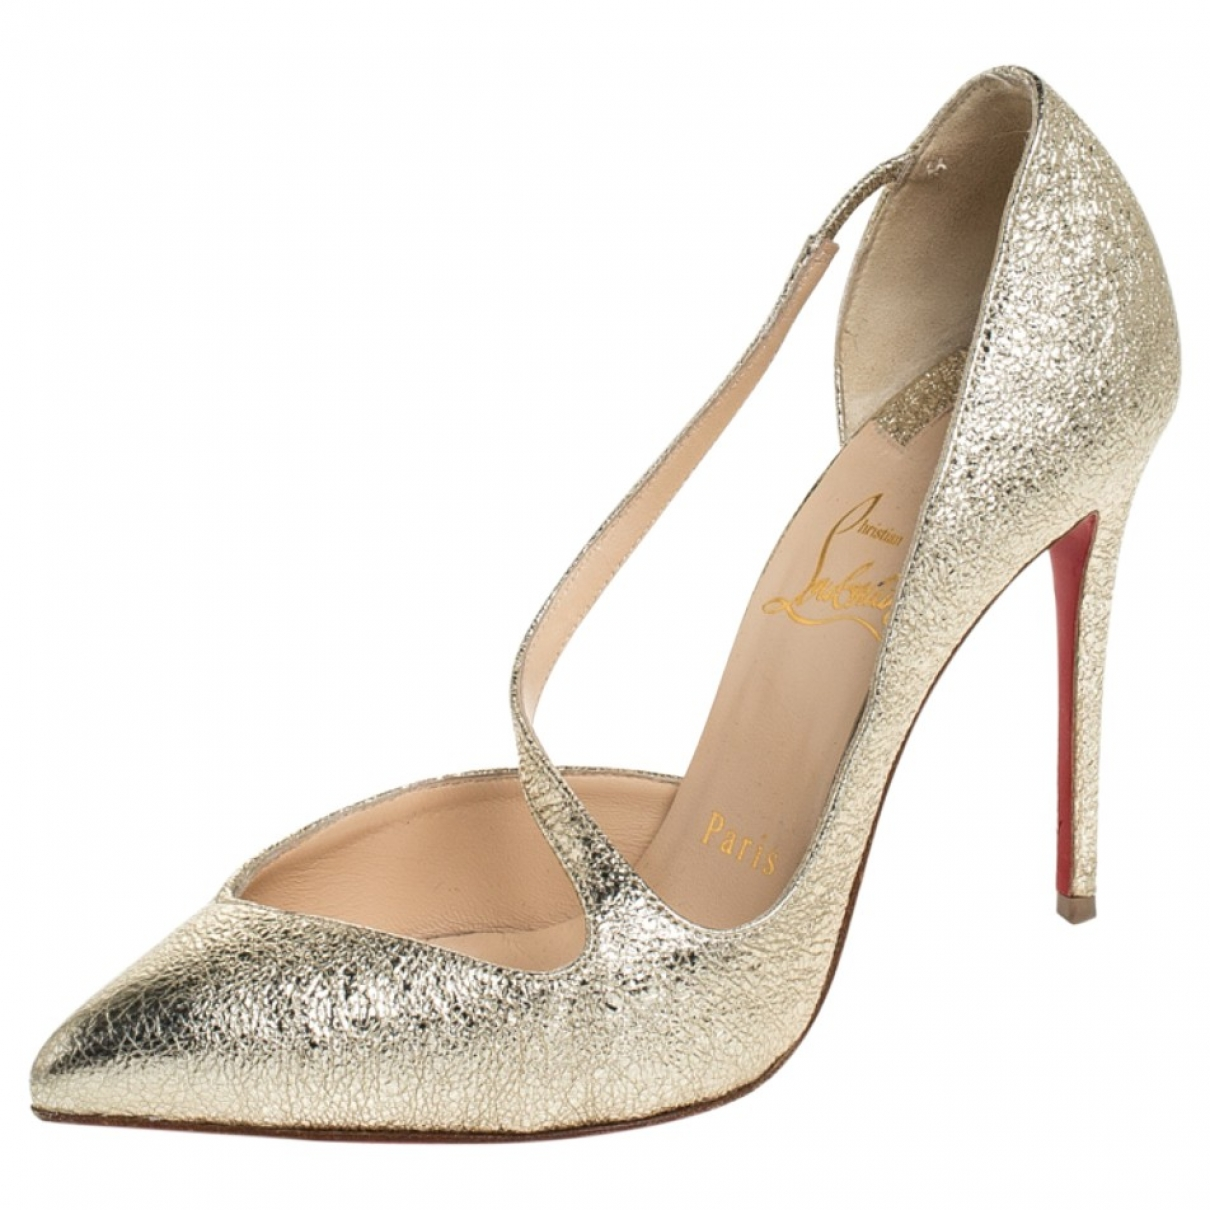 Christian Louboutin \N Gold Leather Heels for Women 5 US